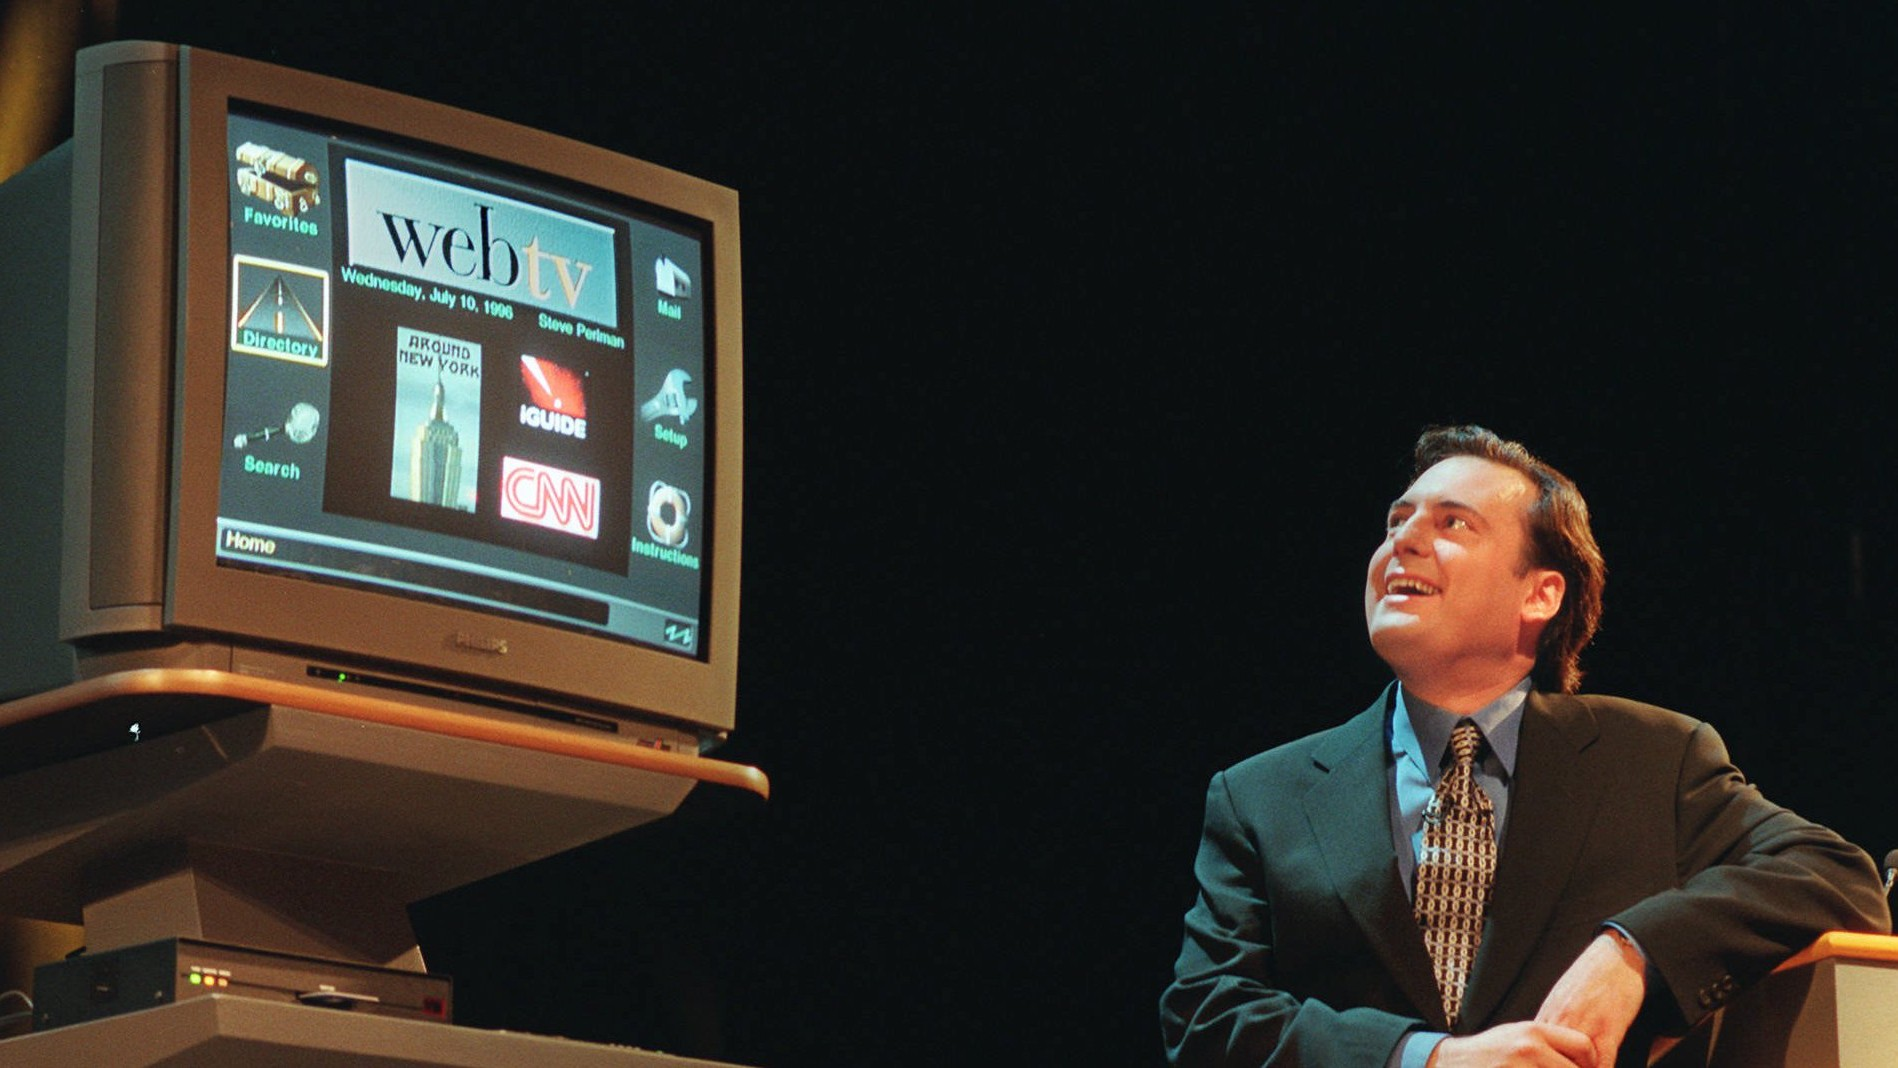 The Story of WebTV, the Smart TV of the 90s